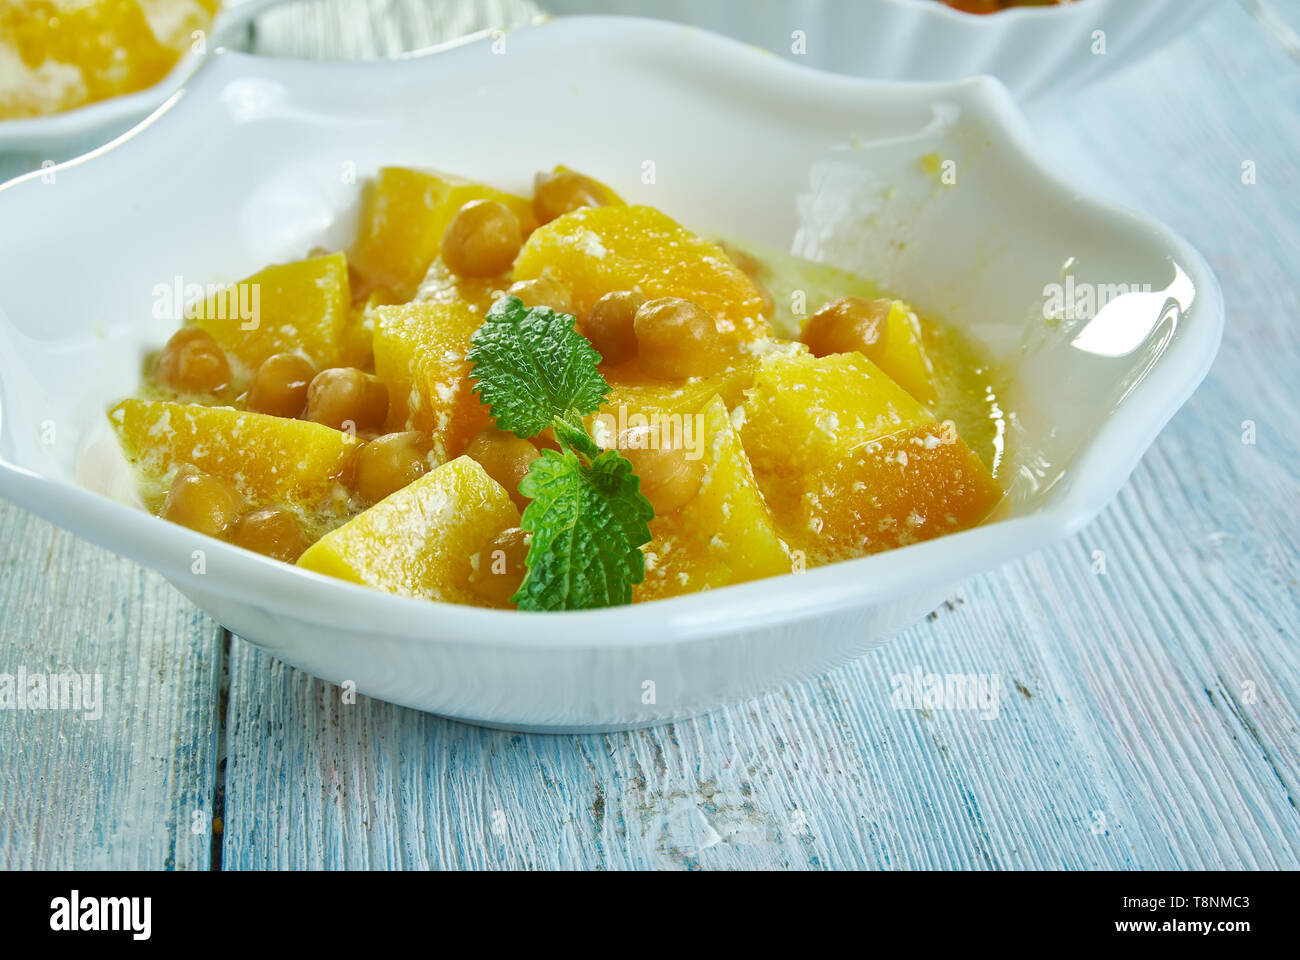 Chickpea and squash coconut curry, great healthy, vegetarian midweek meal. - Stock Image